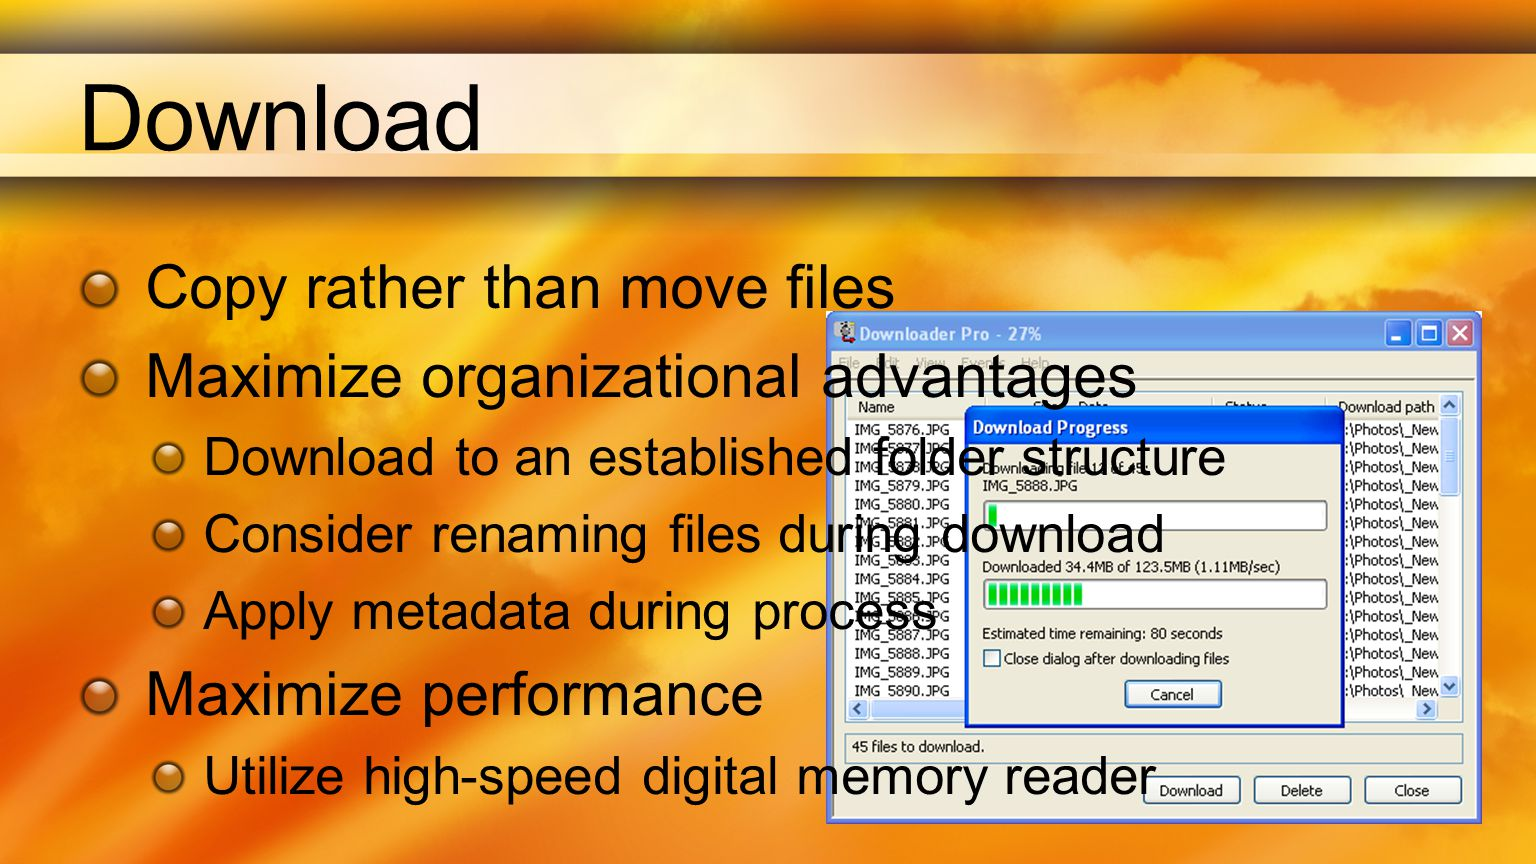 Download Copy rather than move files Maximize organizational advantages Download to an established folder structure Consider renaming files during download Apply metadata during process Maximize performance Utilize high-speed digital memory reader